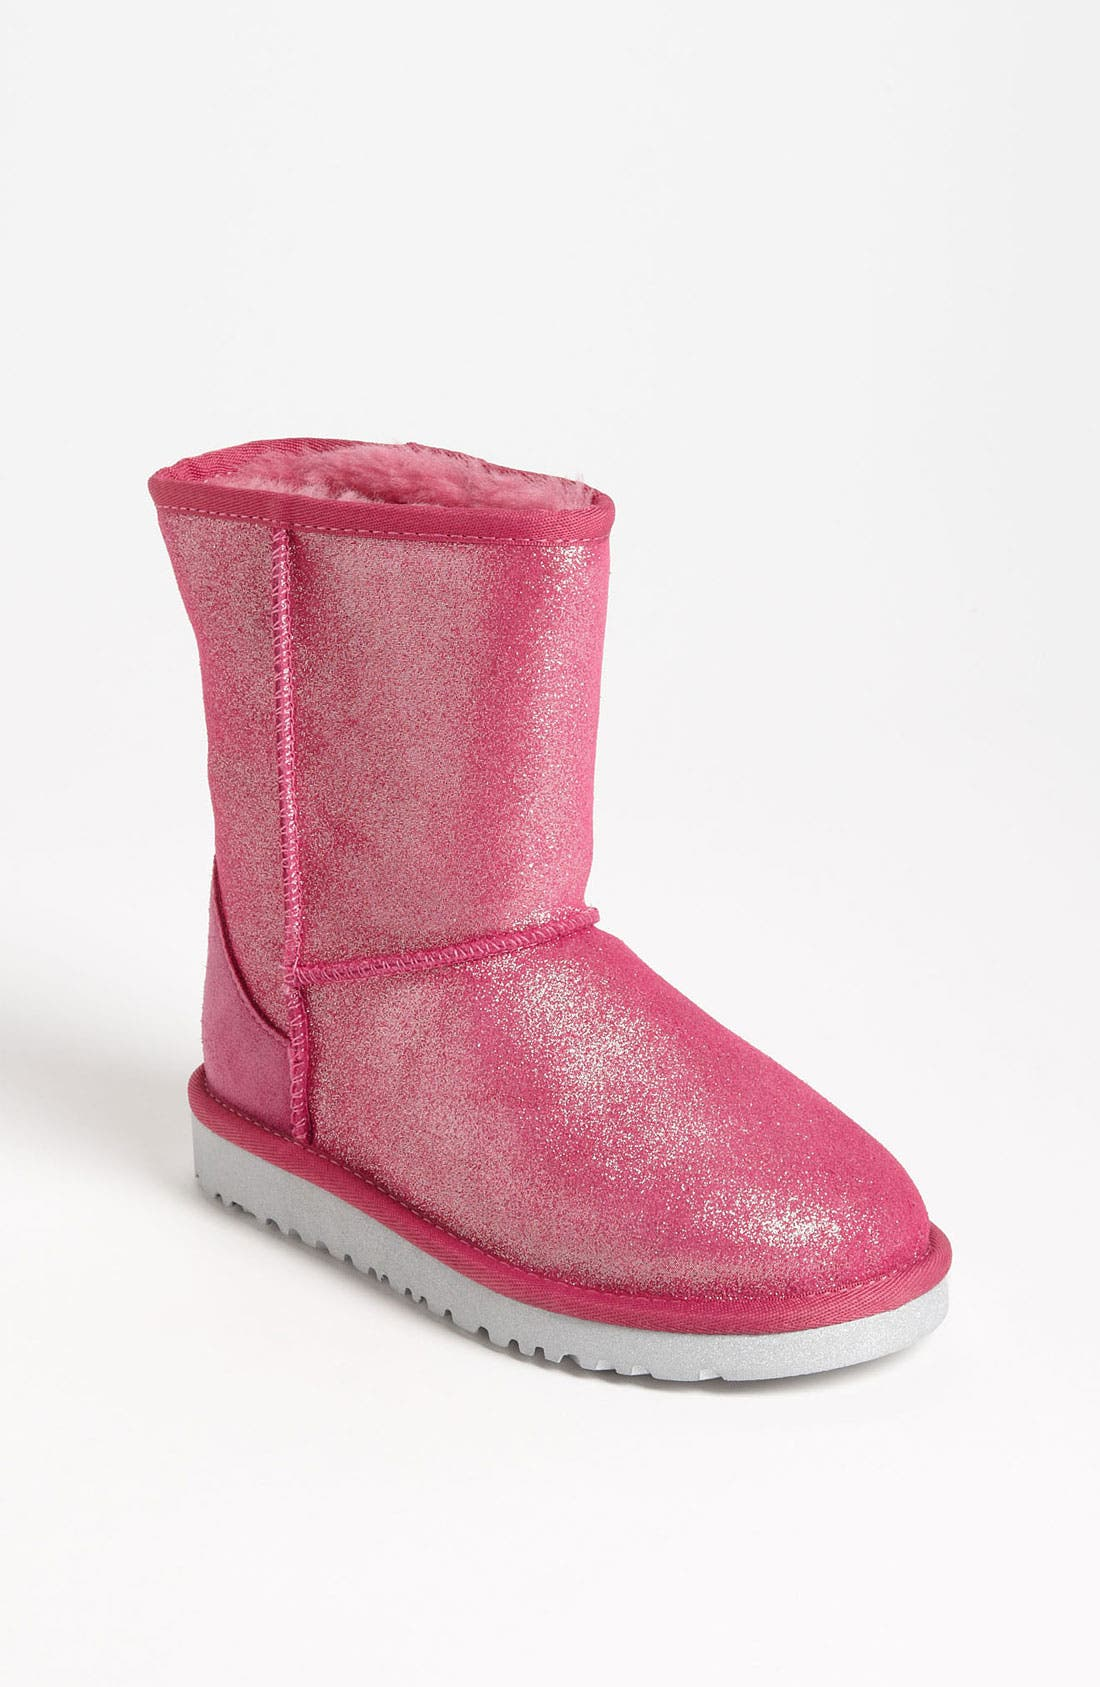 Alternate Image 1 Selected - UGG® Australia 'Classic Glitter' Boot (Walker, Toddler, Little Kid & Big Kid)